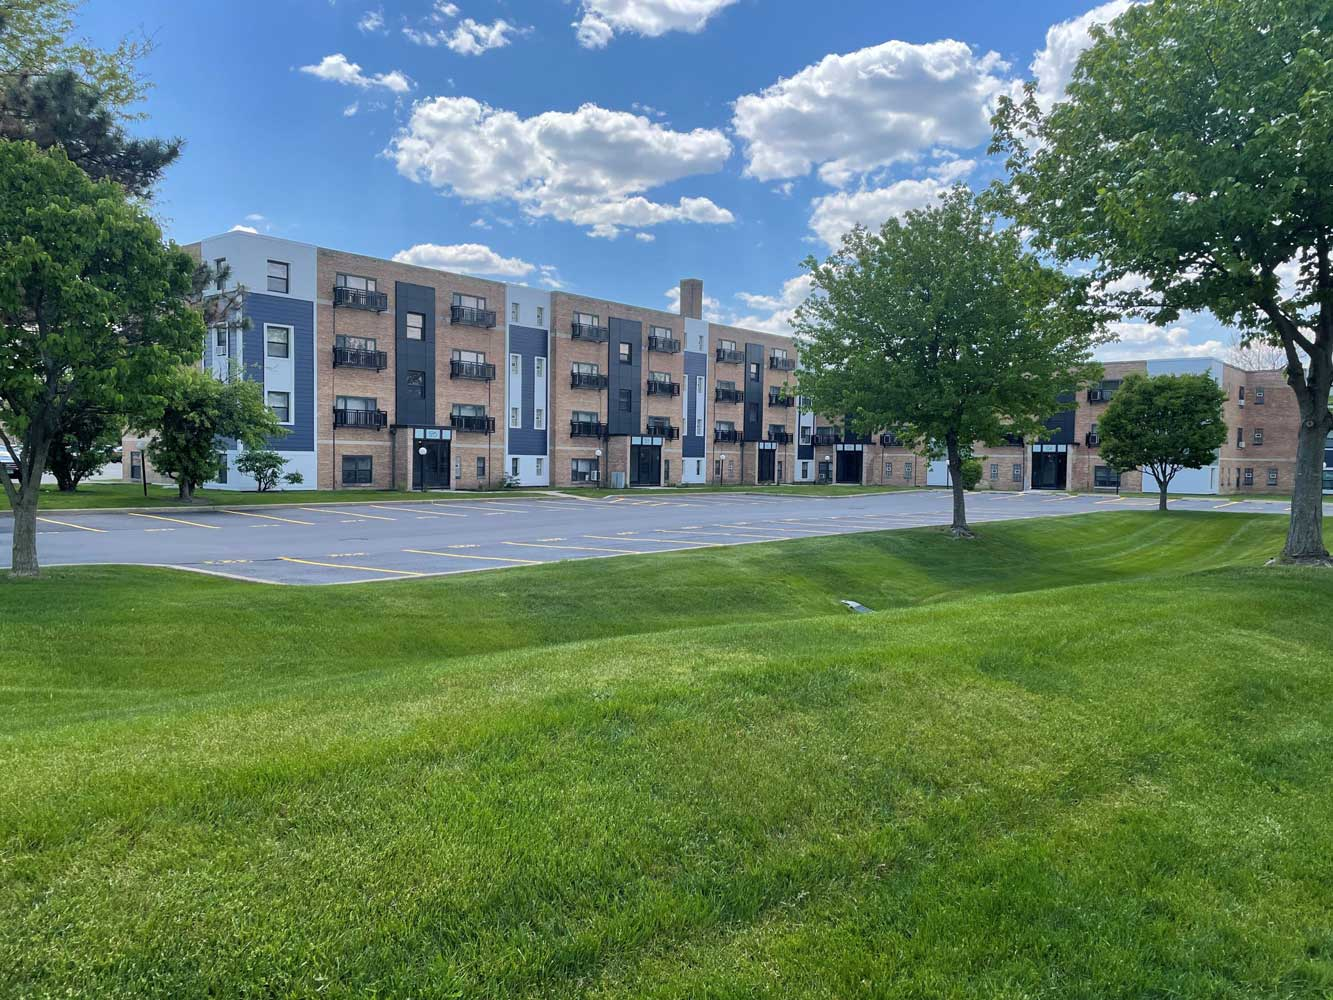 Package Receiving Available at Elmhurst Terrace Apartments in Elmhurst, Illinois